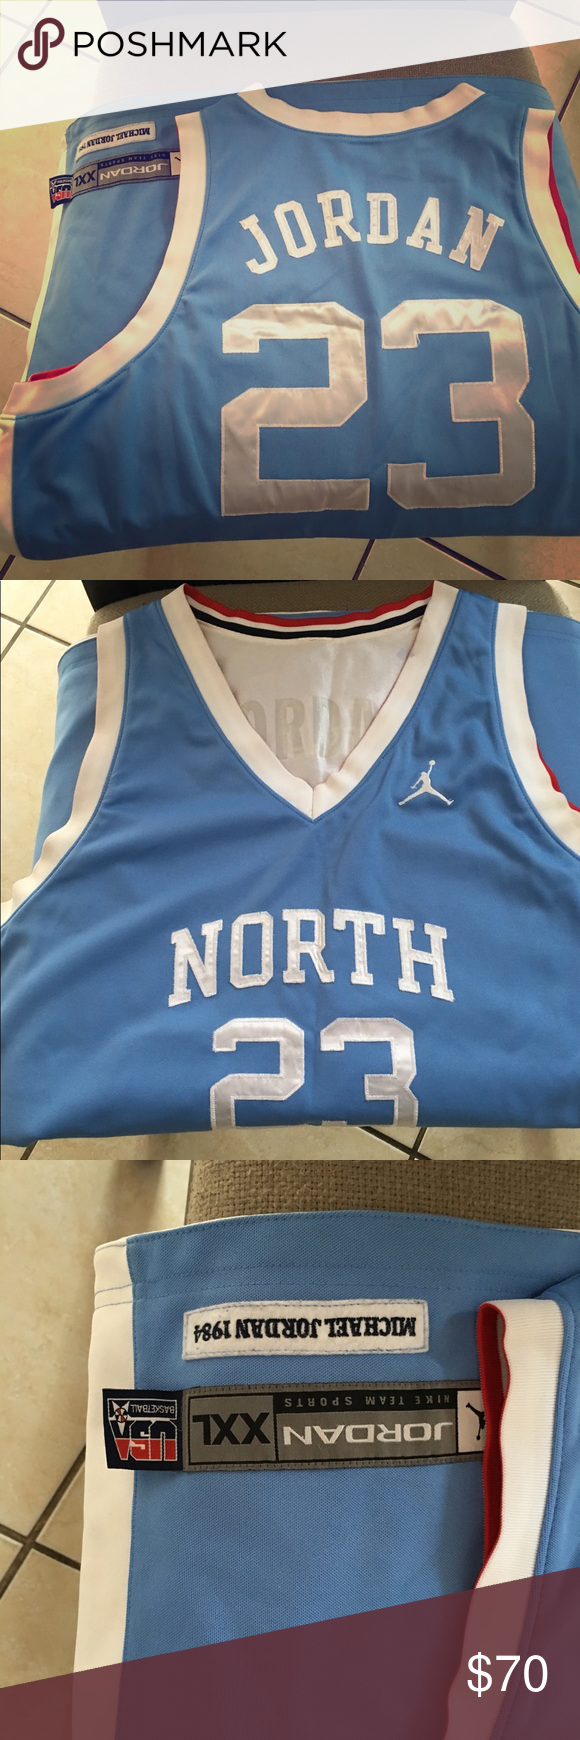 efe11cb630d3 Michael Jordan UNC  USA Reversible Jersey RARE!!!!!!!! Mint Jersey. Hardly  worn. Throw back Jordan Jersey. Size XXL. Make me an offer. Great Jersey  for the ...